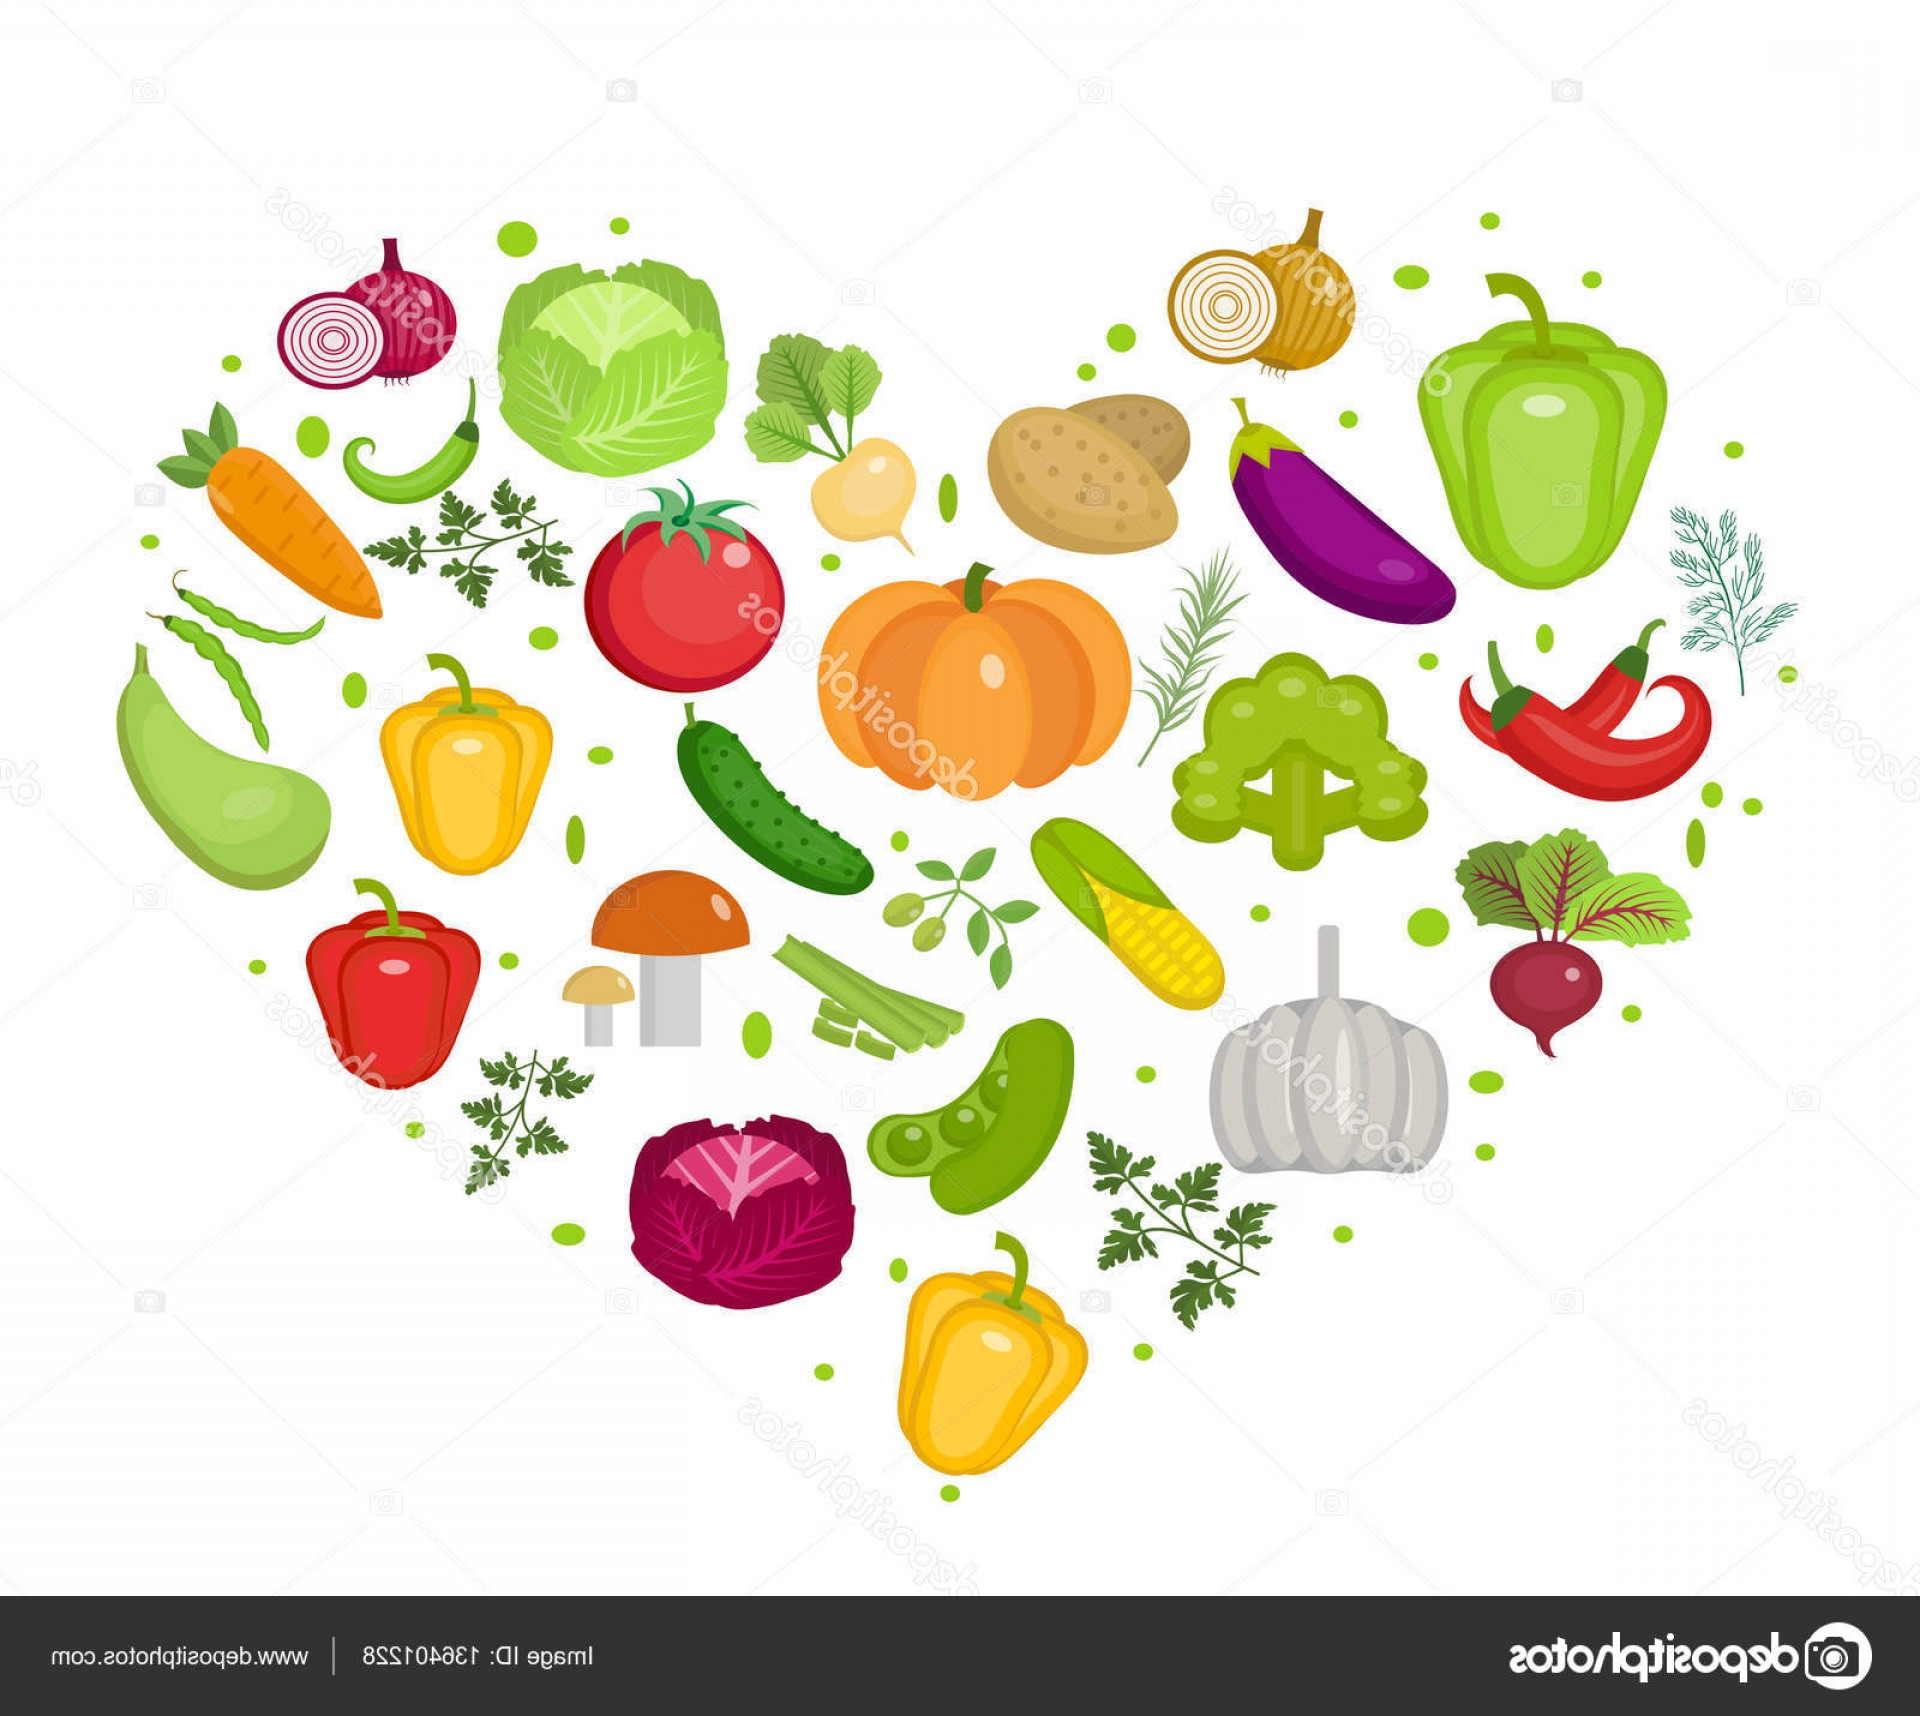 Vegan Heart Vectors: Stock Illustration Vegetables Icon Set In Heart